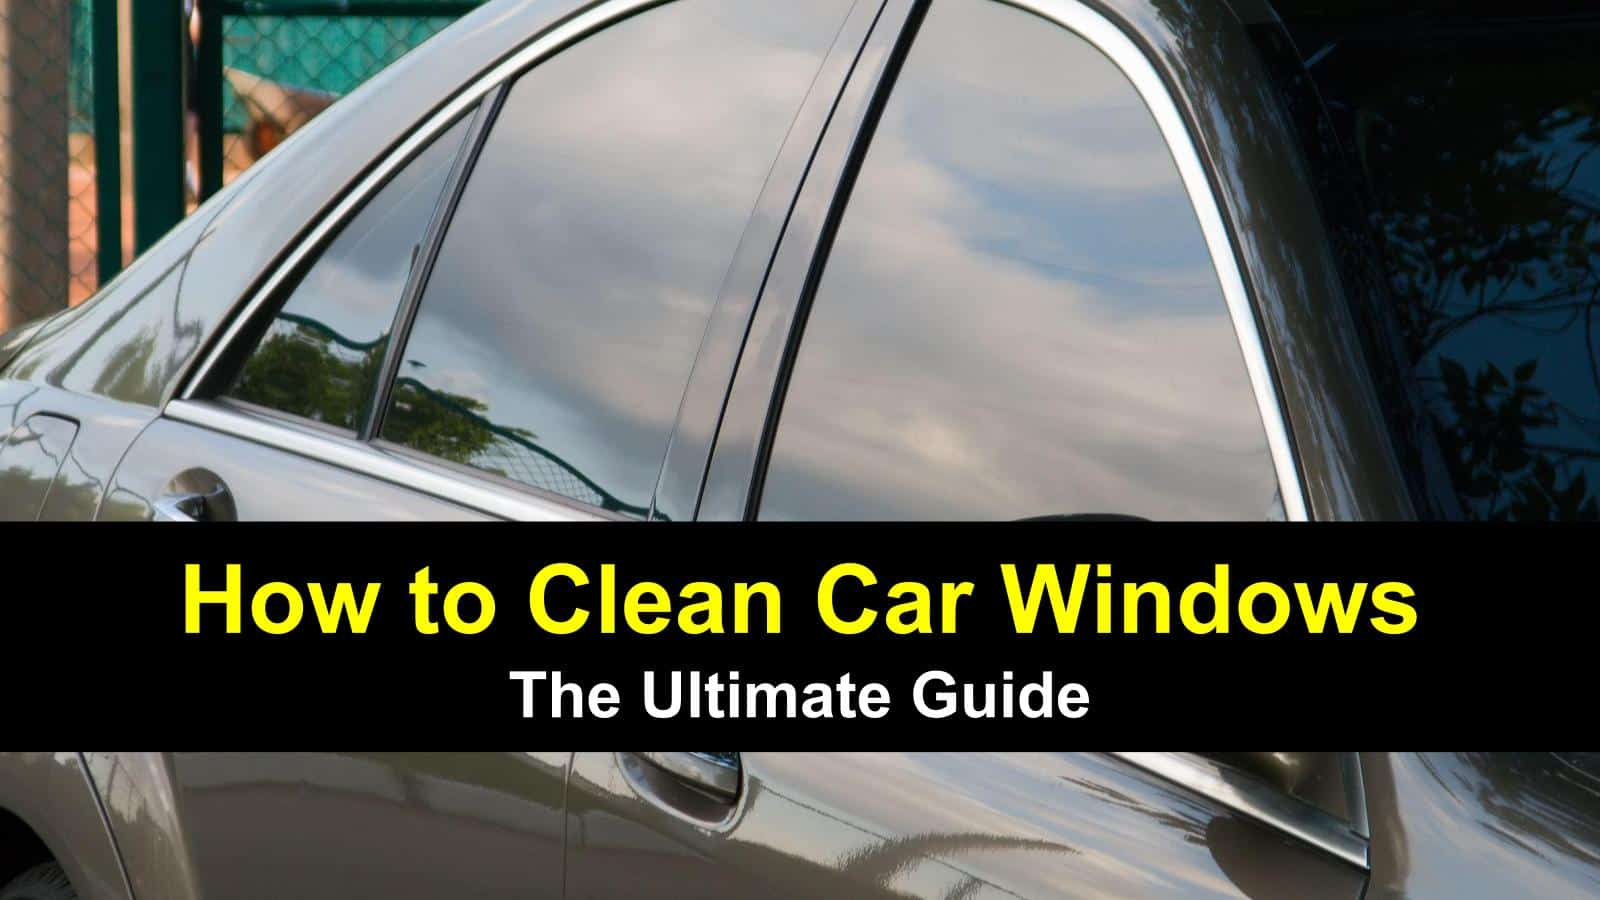 how to wash car windows, along with interiors and wipers - title image